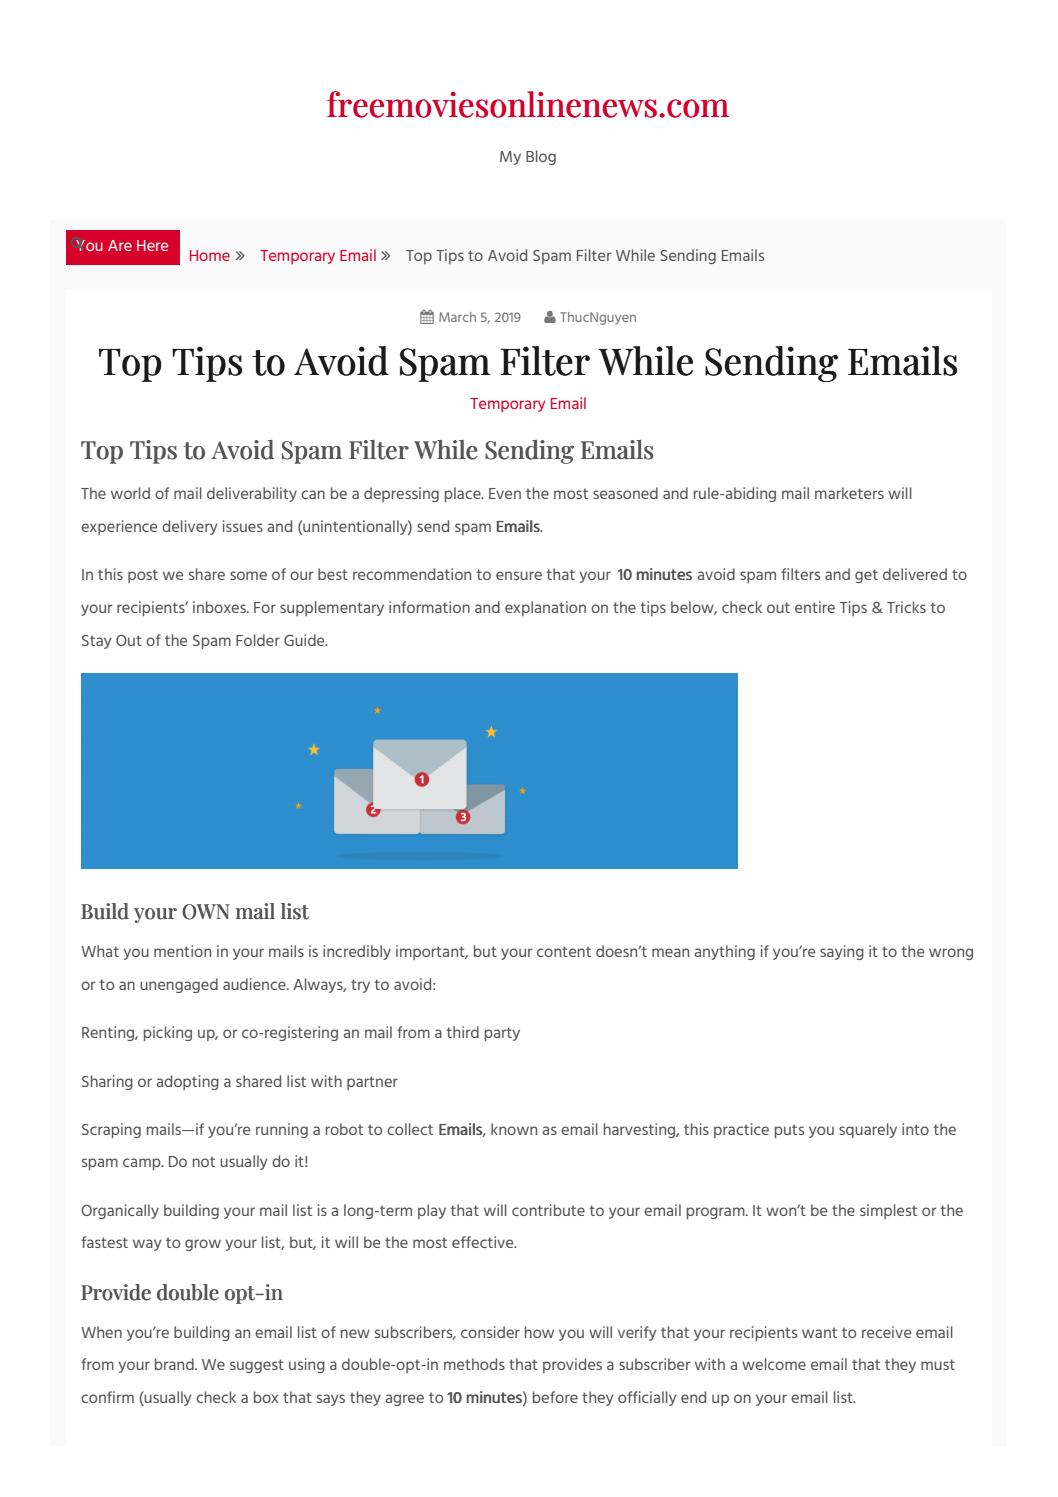 Top Tips to Avoid Spam Filter While Sending Emails by